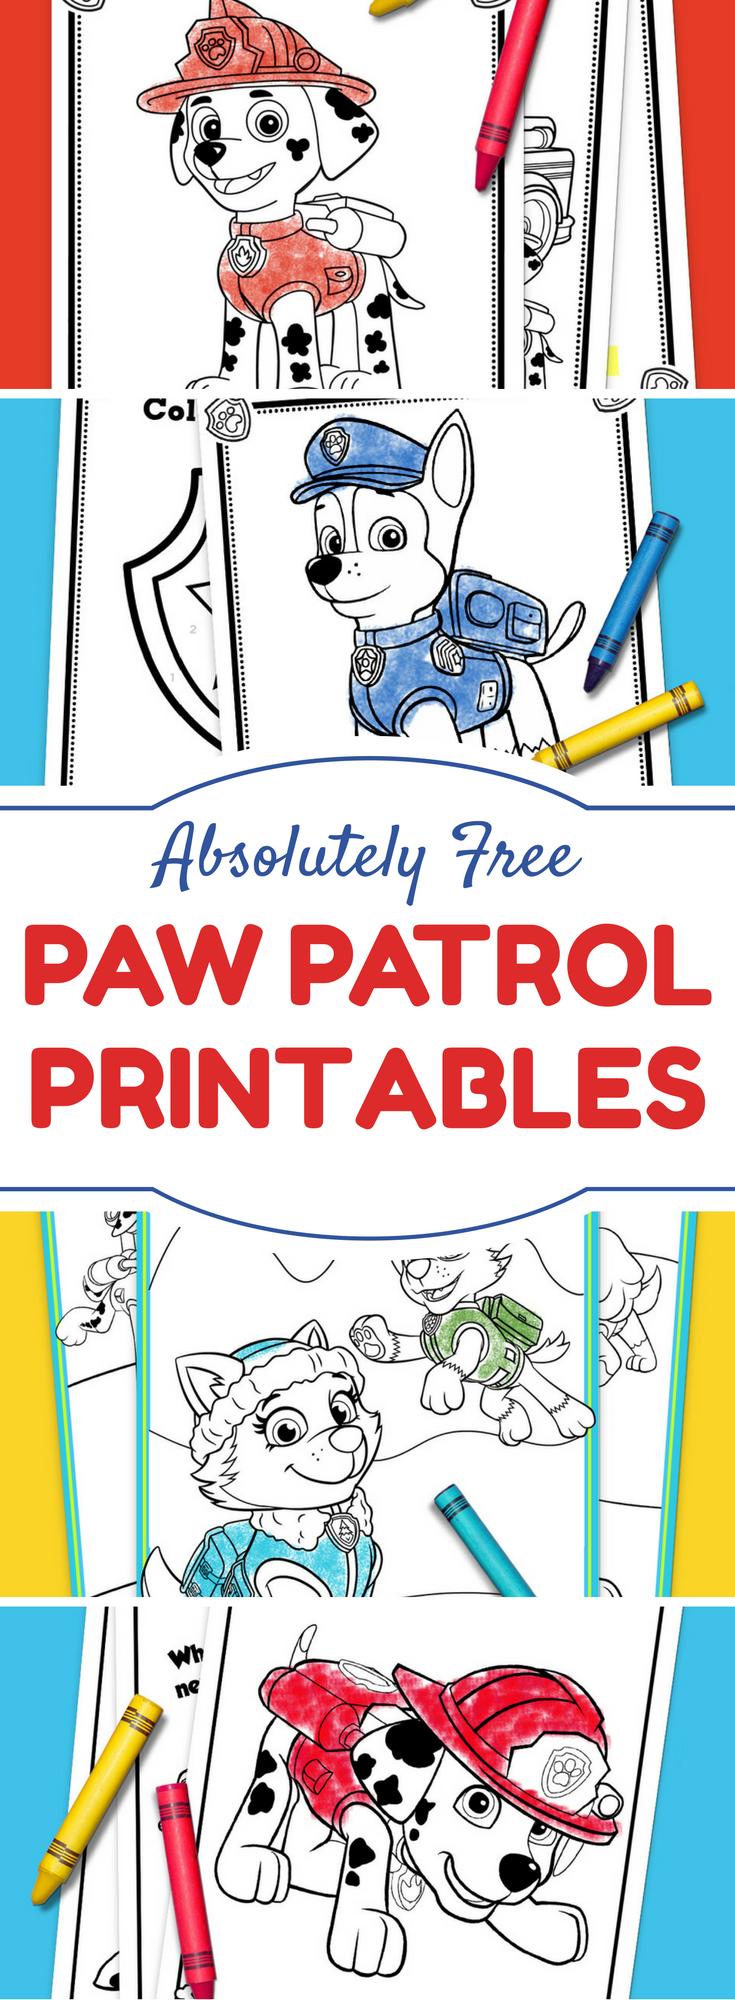 the top 10 paw patrol printables of all time paw patrol party